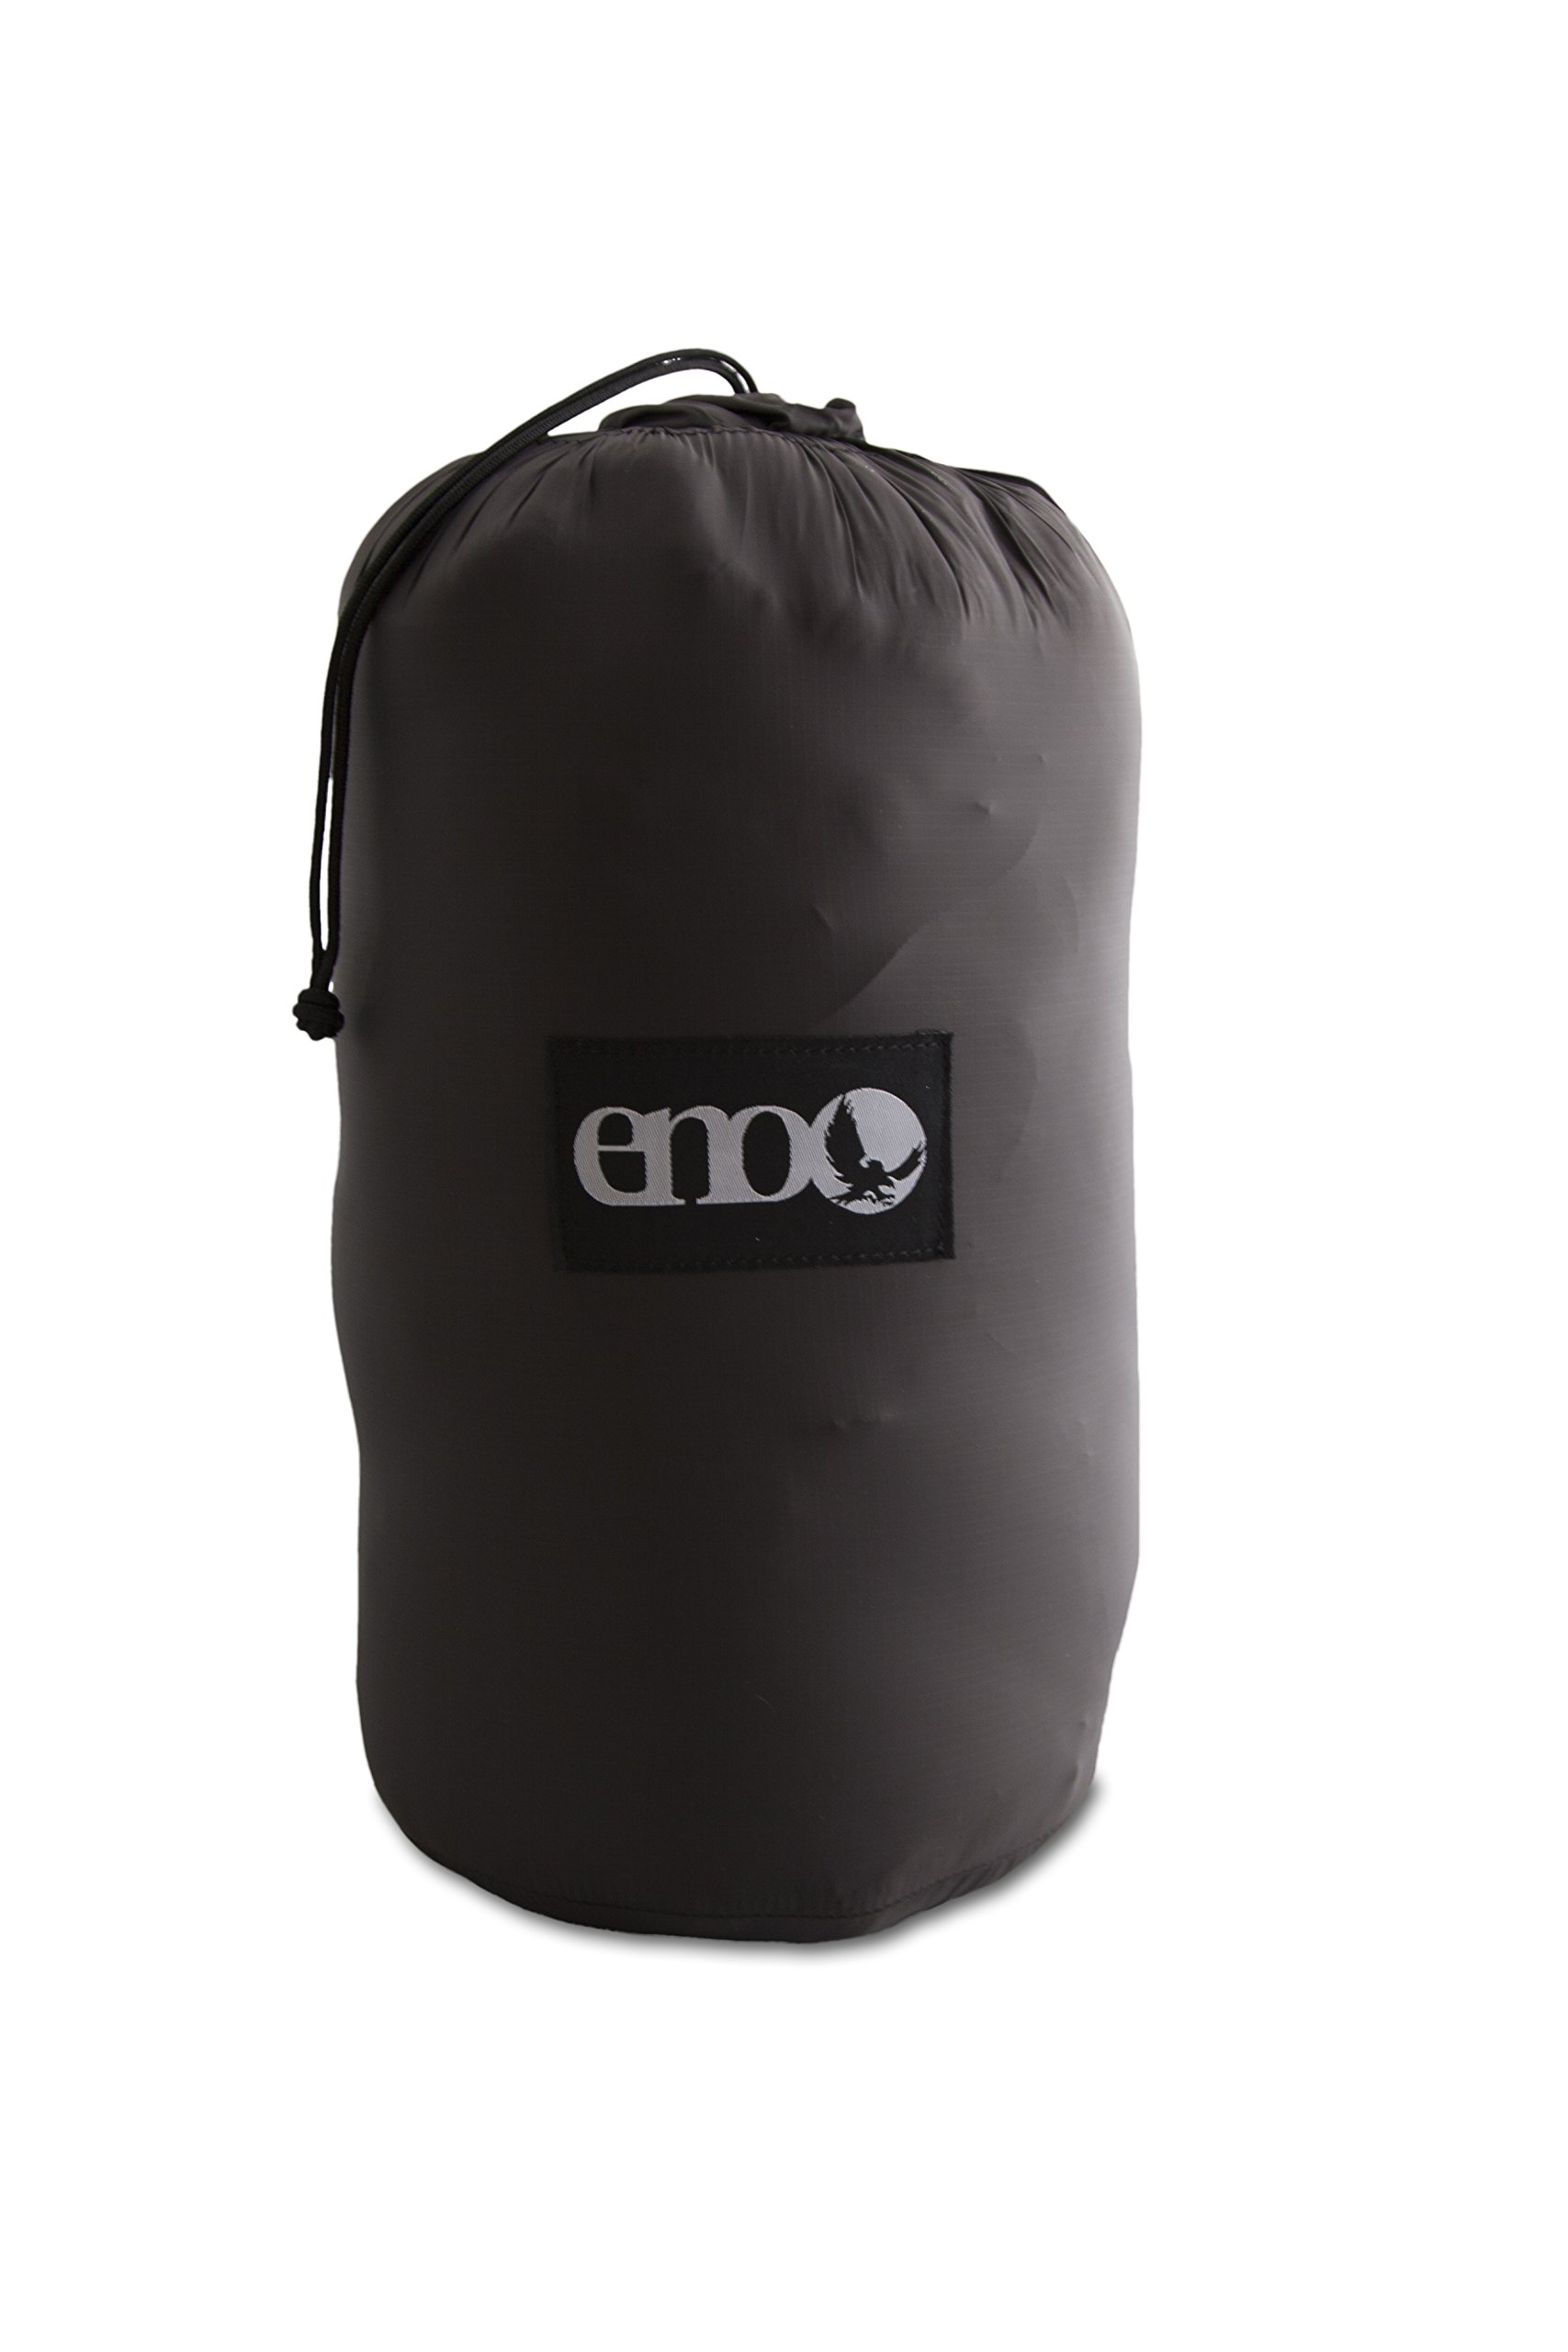 ENO Eagles Nest Outfitters - Vulcan Underquilt, Ultralight Camping Quilt, Orange/Charcoal by Eagles Nest Outfitters (Image #3)